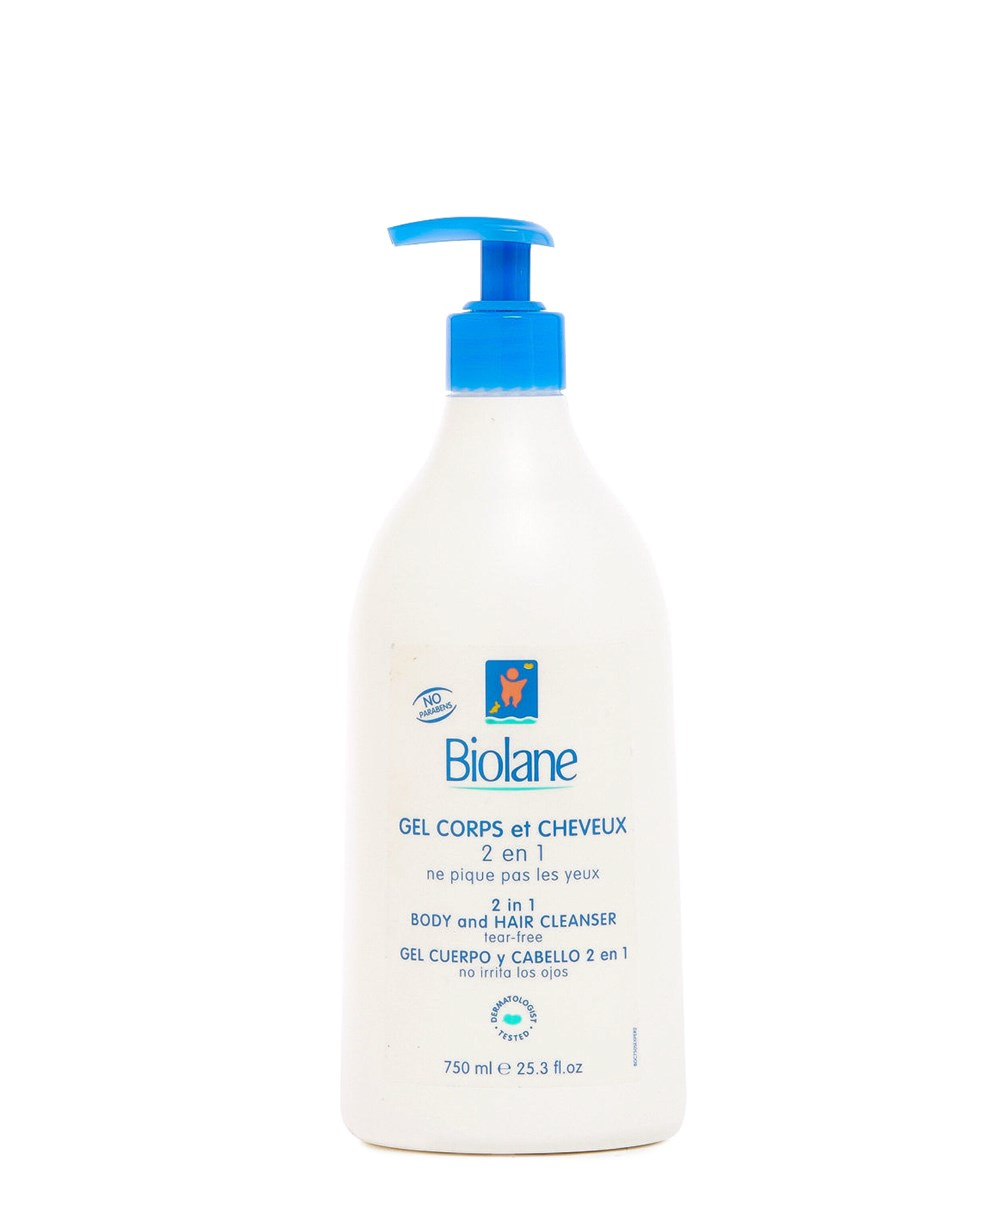 Biolane 2 in 1 Hair and Body Cleanser 750mL